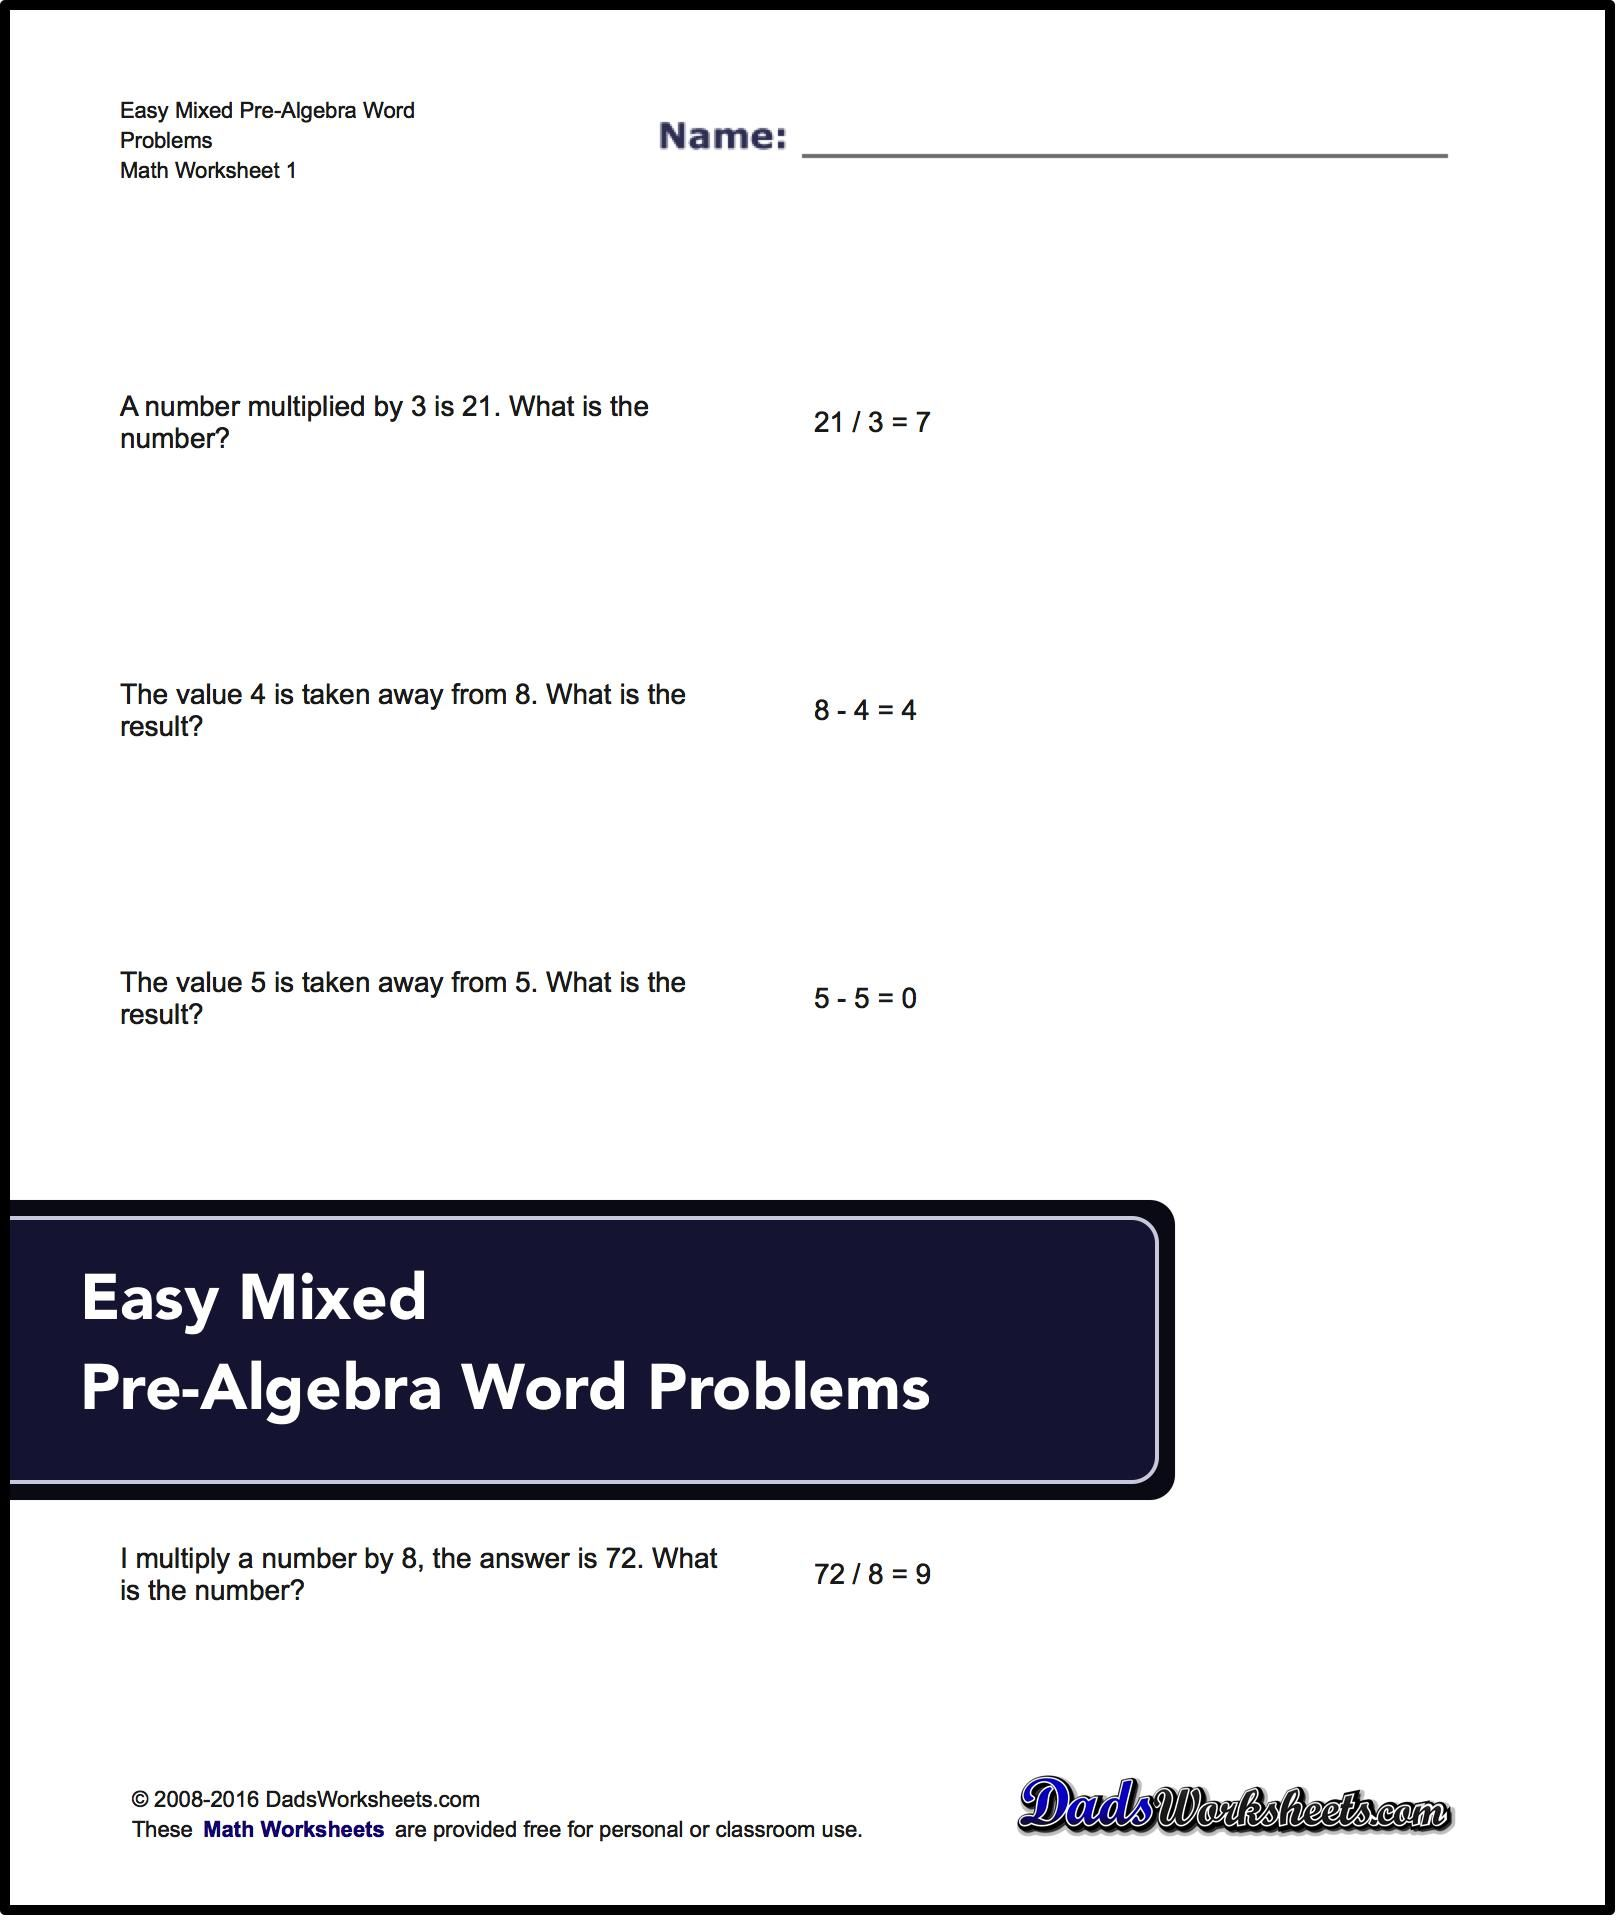 Word Problems That Use Standard Math Vocabulary To